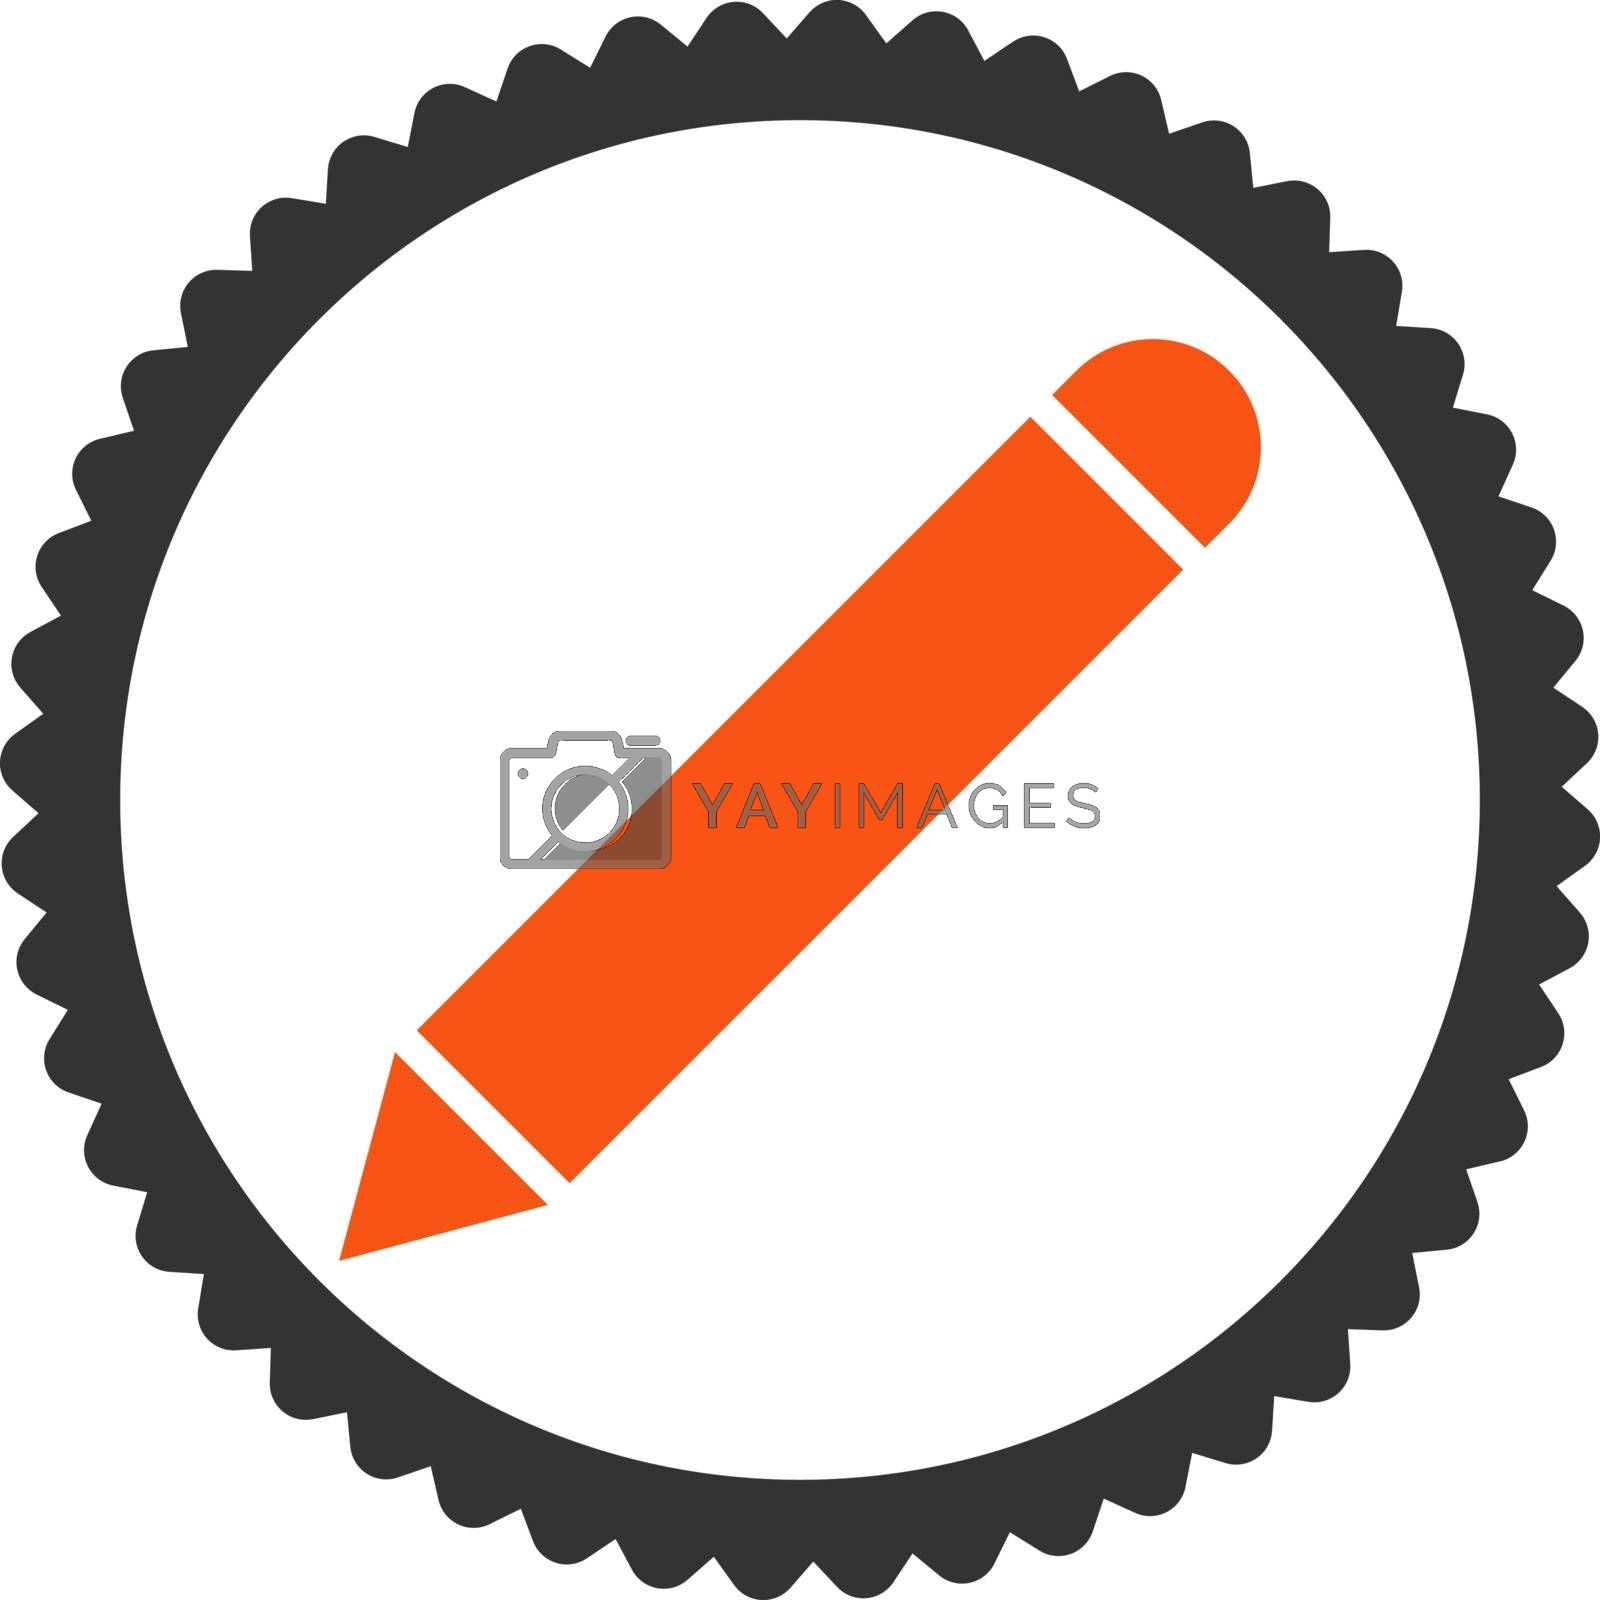 Pencil flat orange and gray colors round stamp icon by Aha-Soft